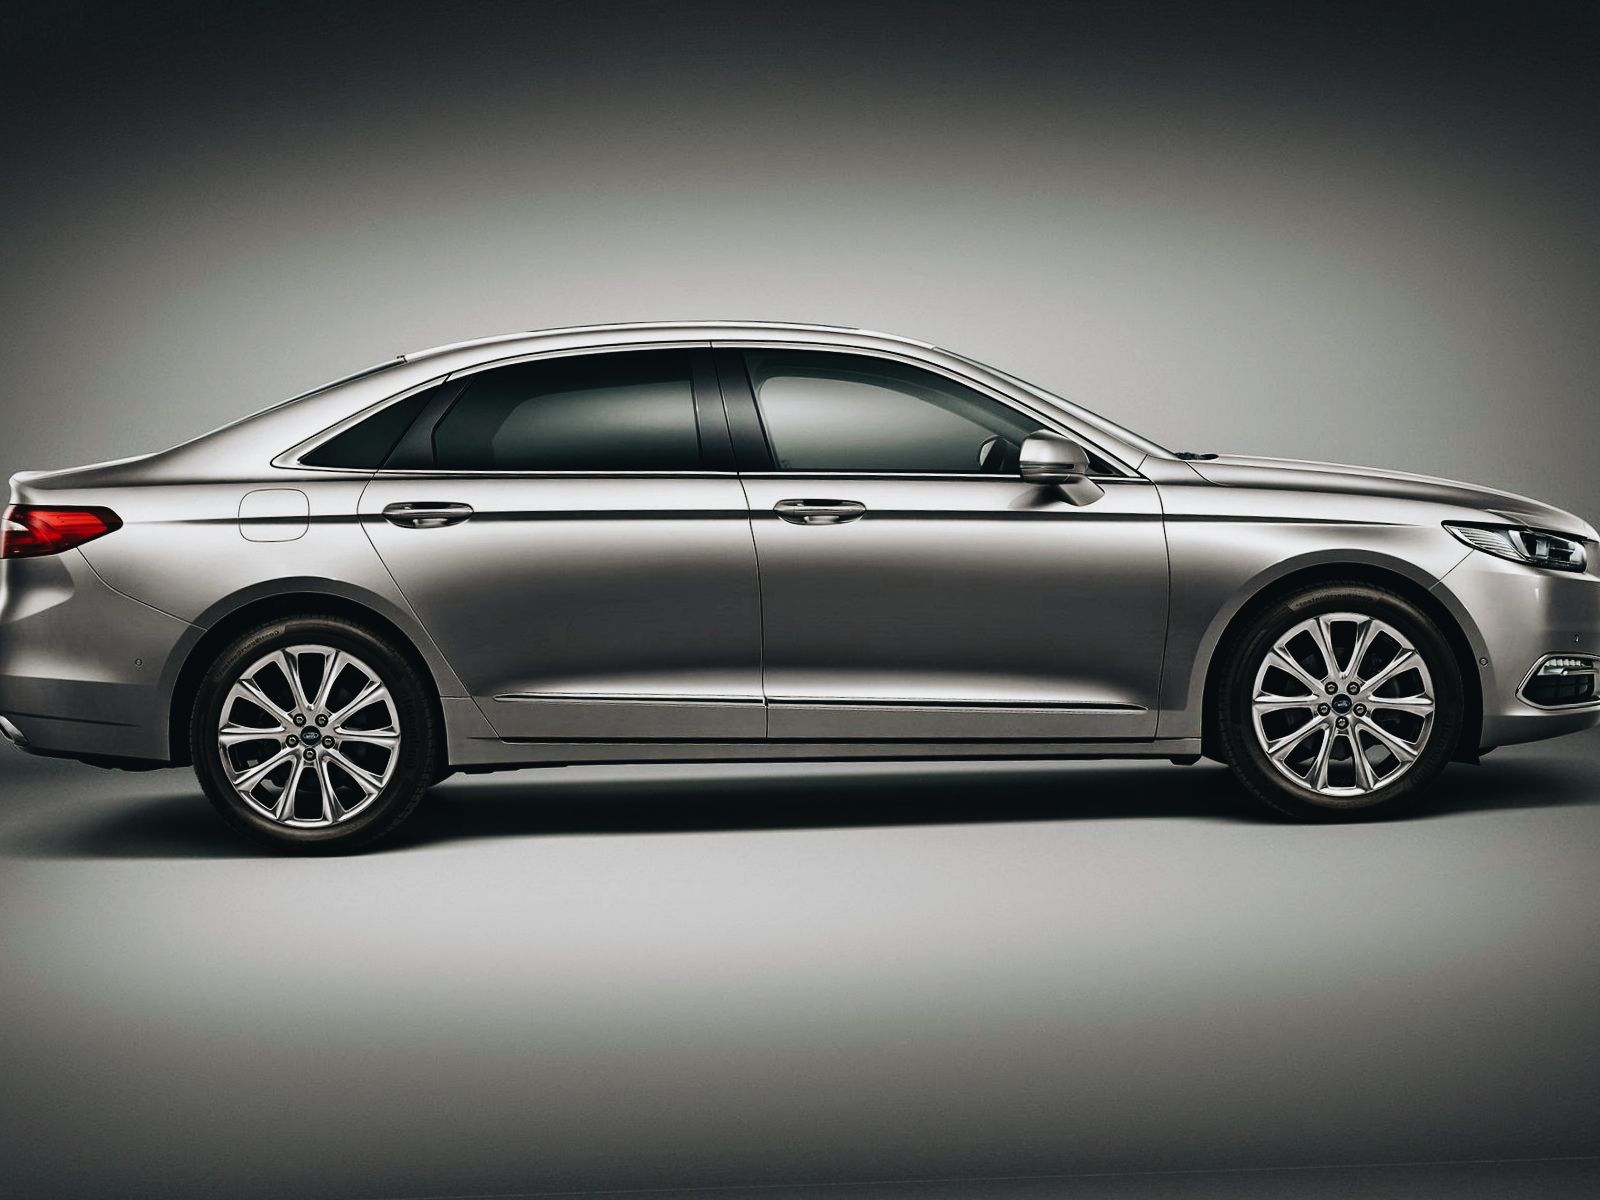 2017 Ford Taurus Review Ford Cars Review Taurus